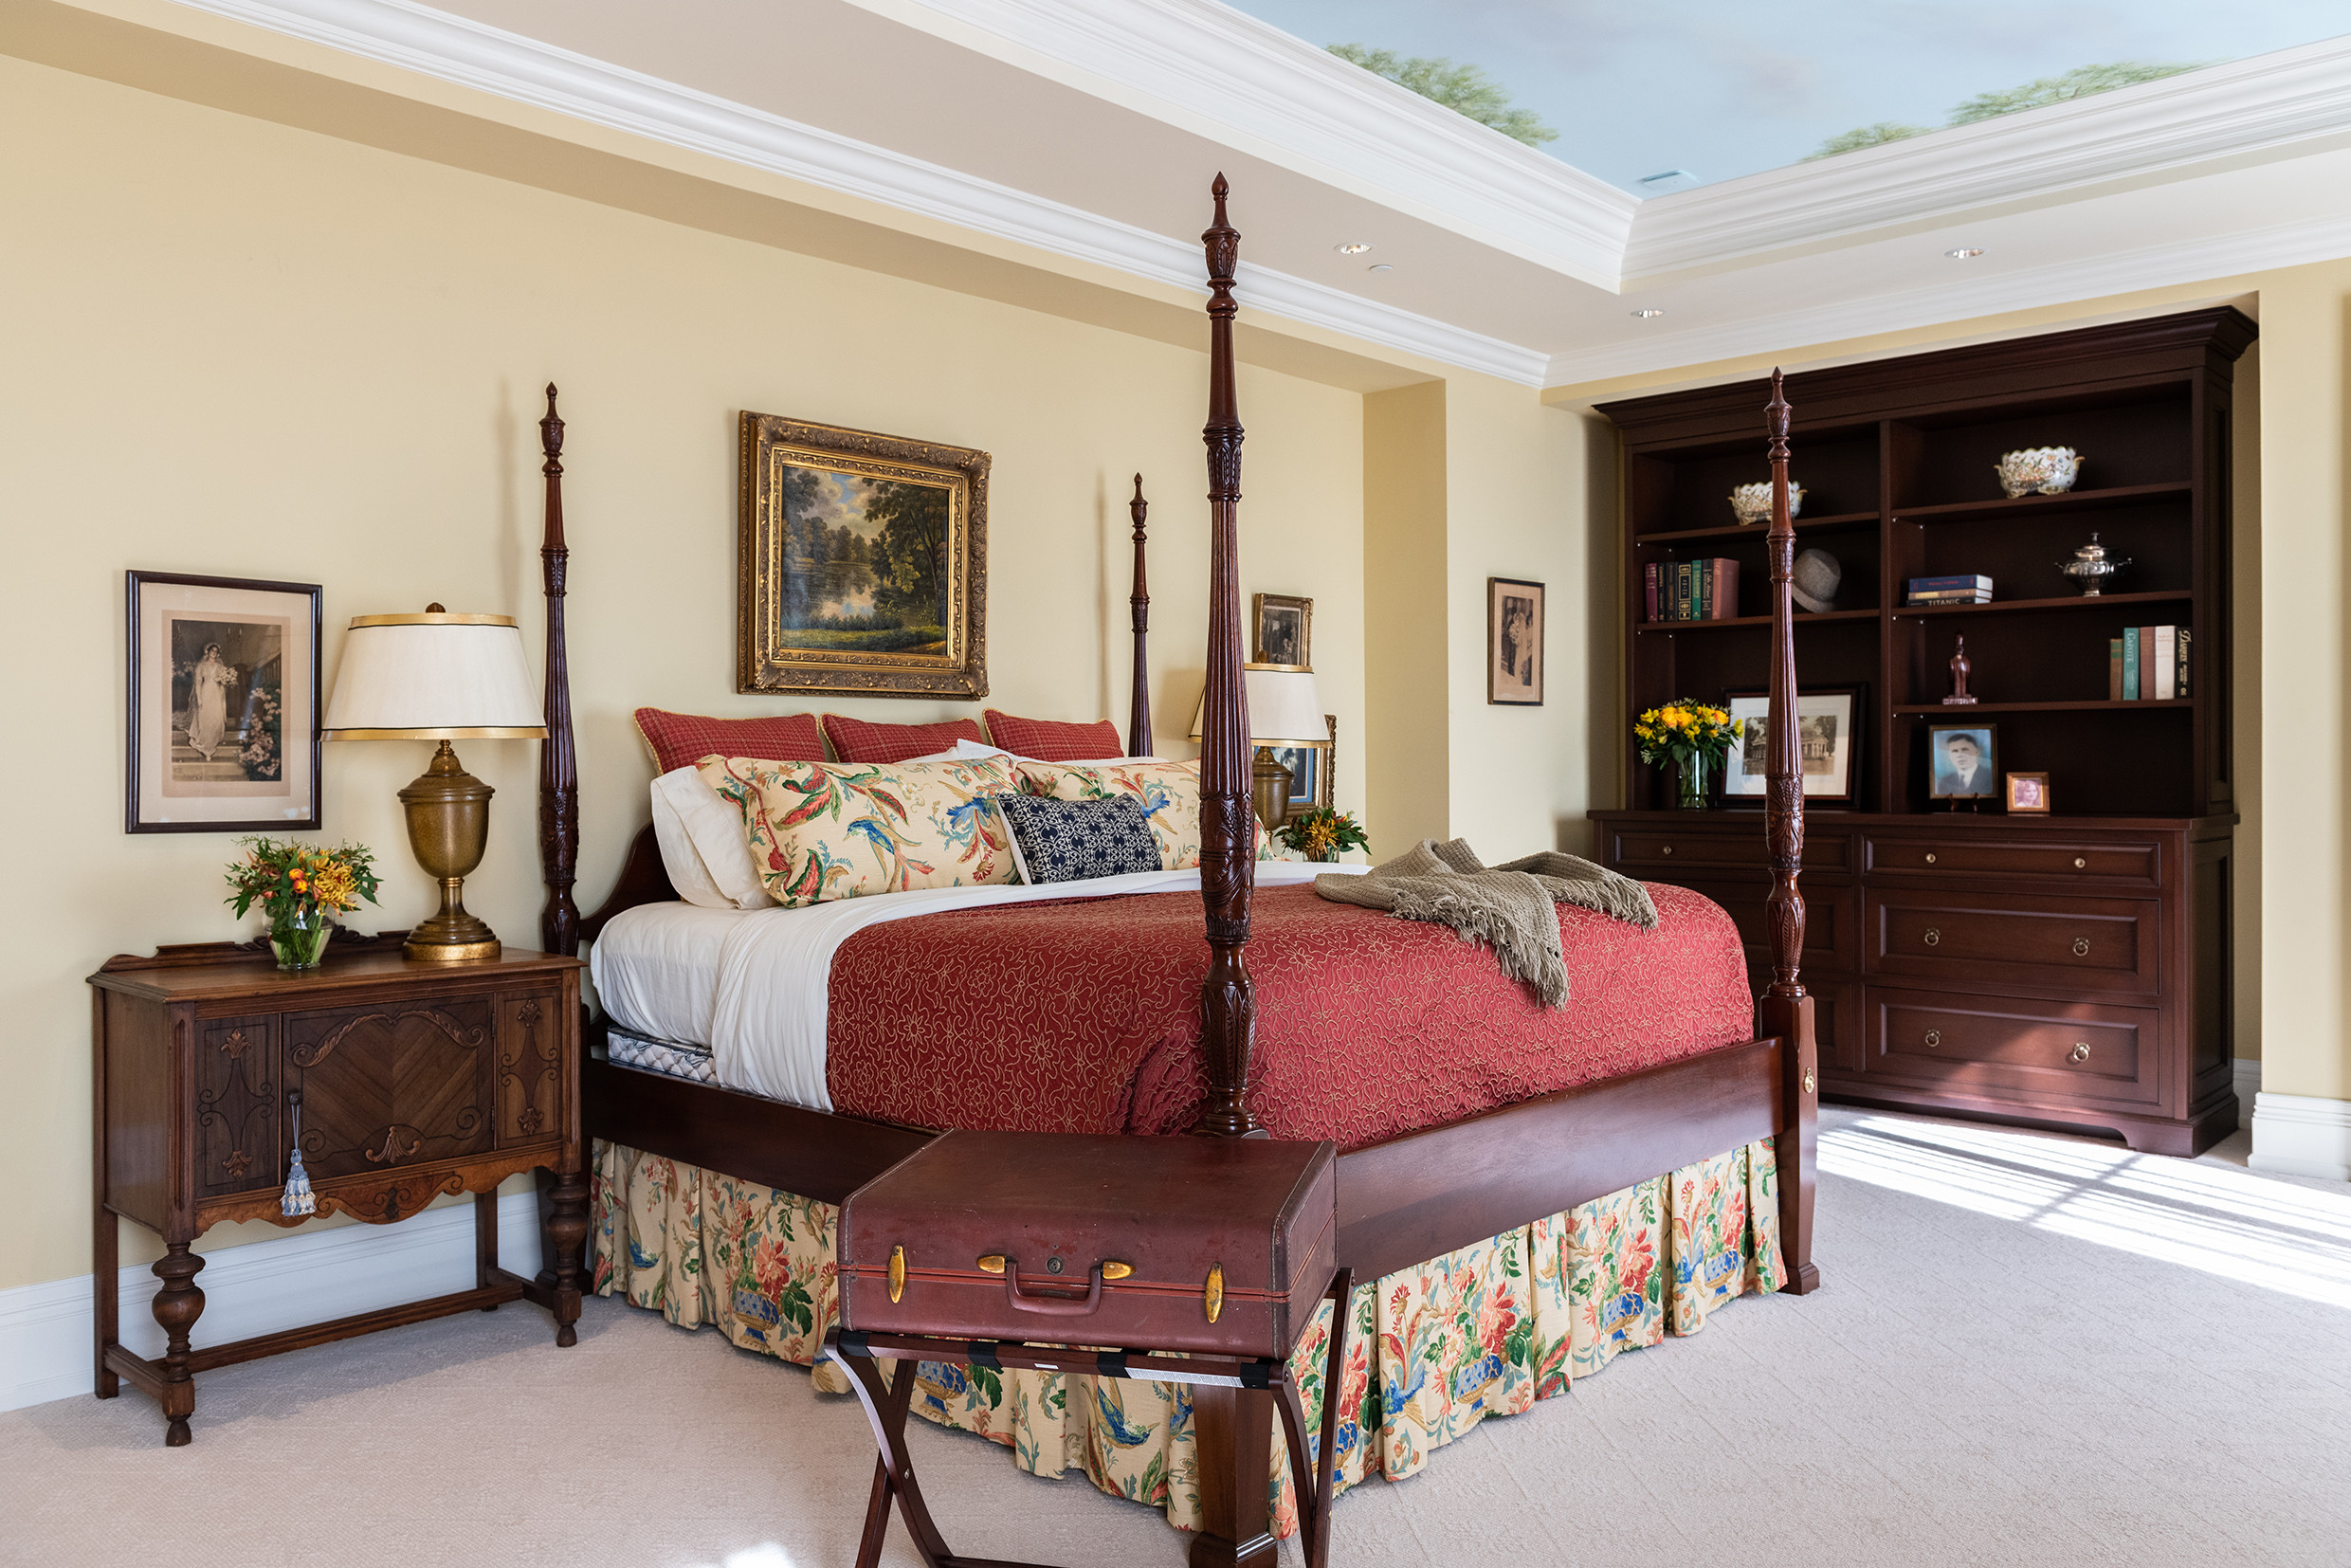 75 Beautiful Traditional Bedroom Pictures Ideas February 2021 Houzz